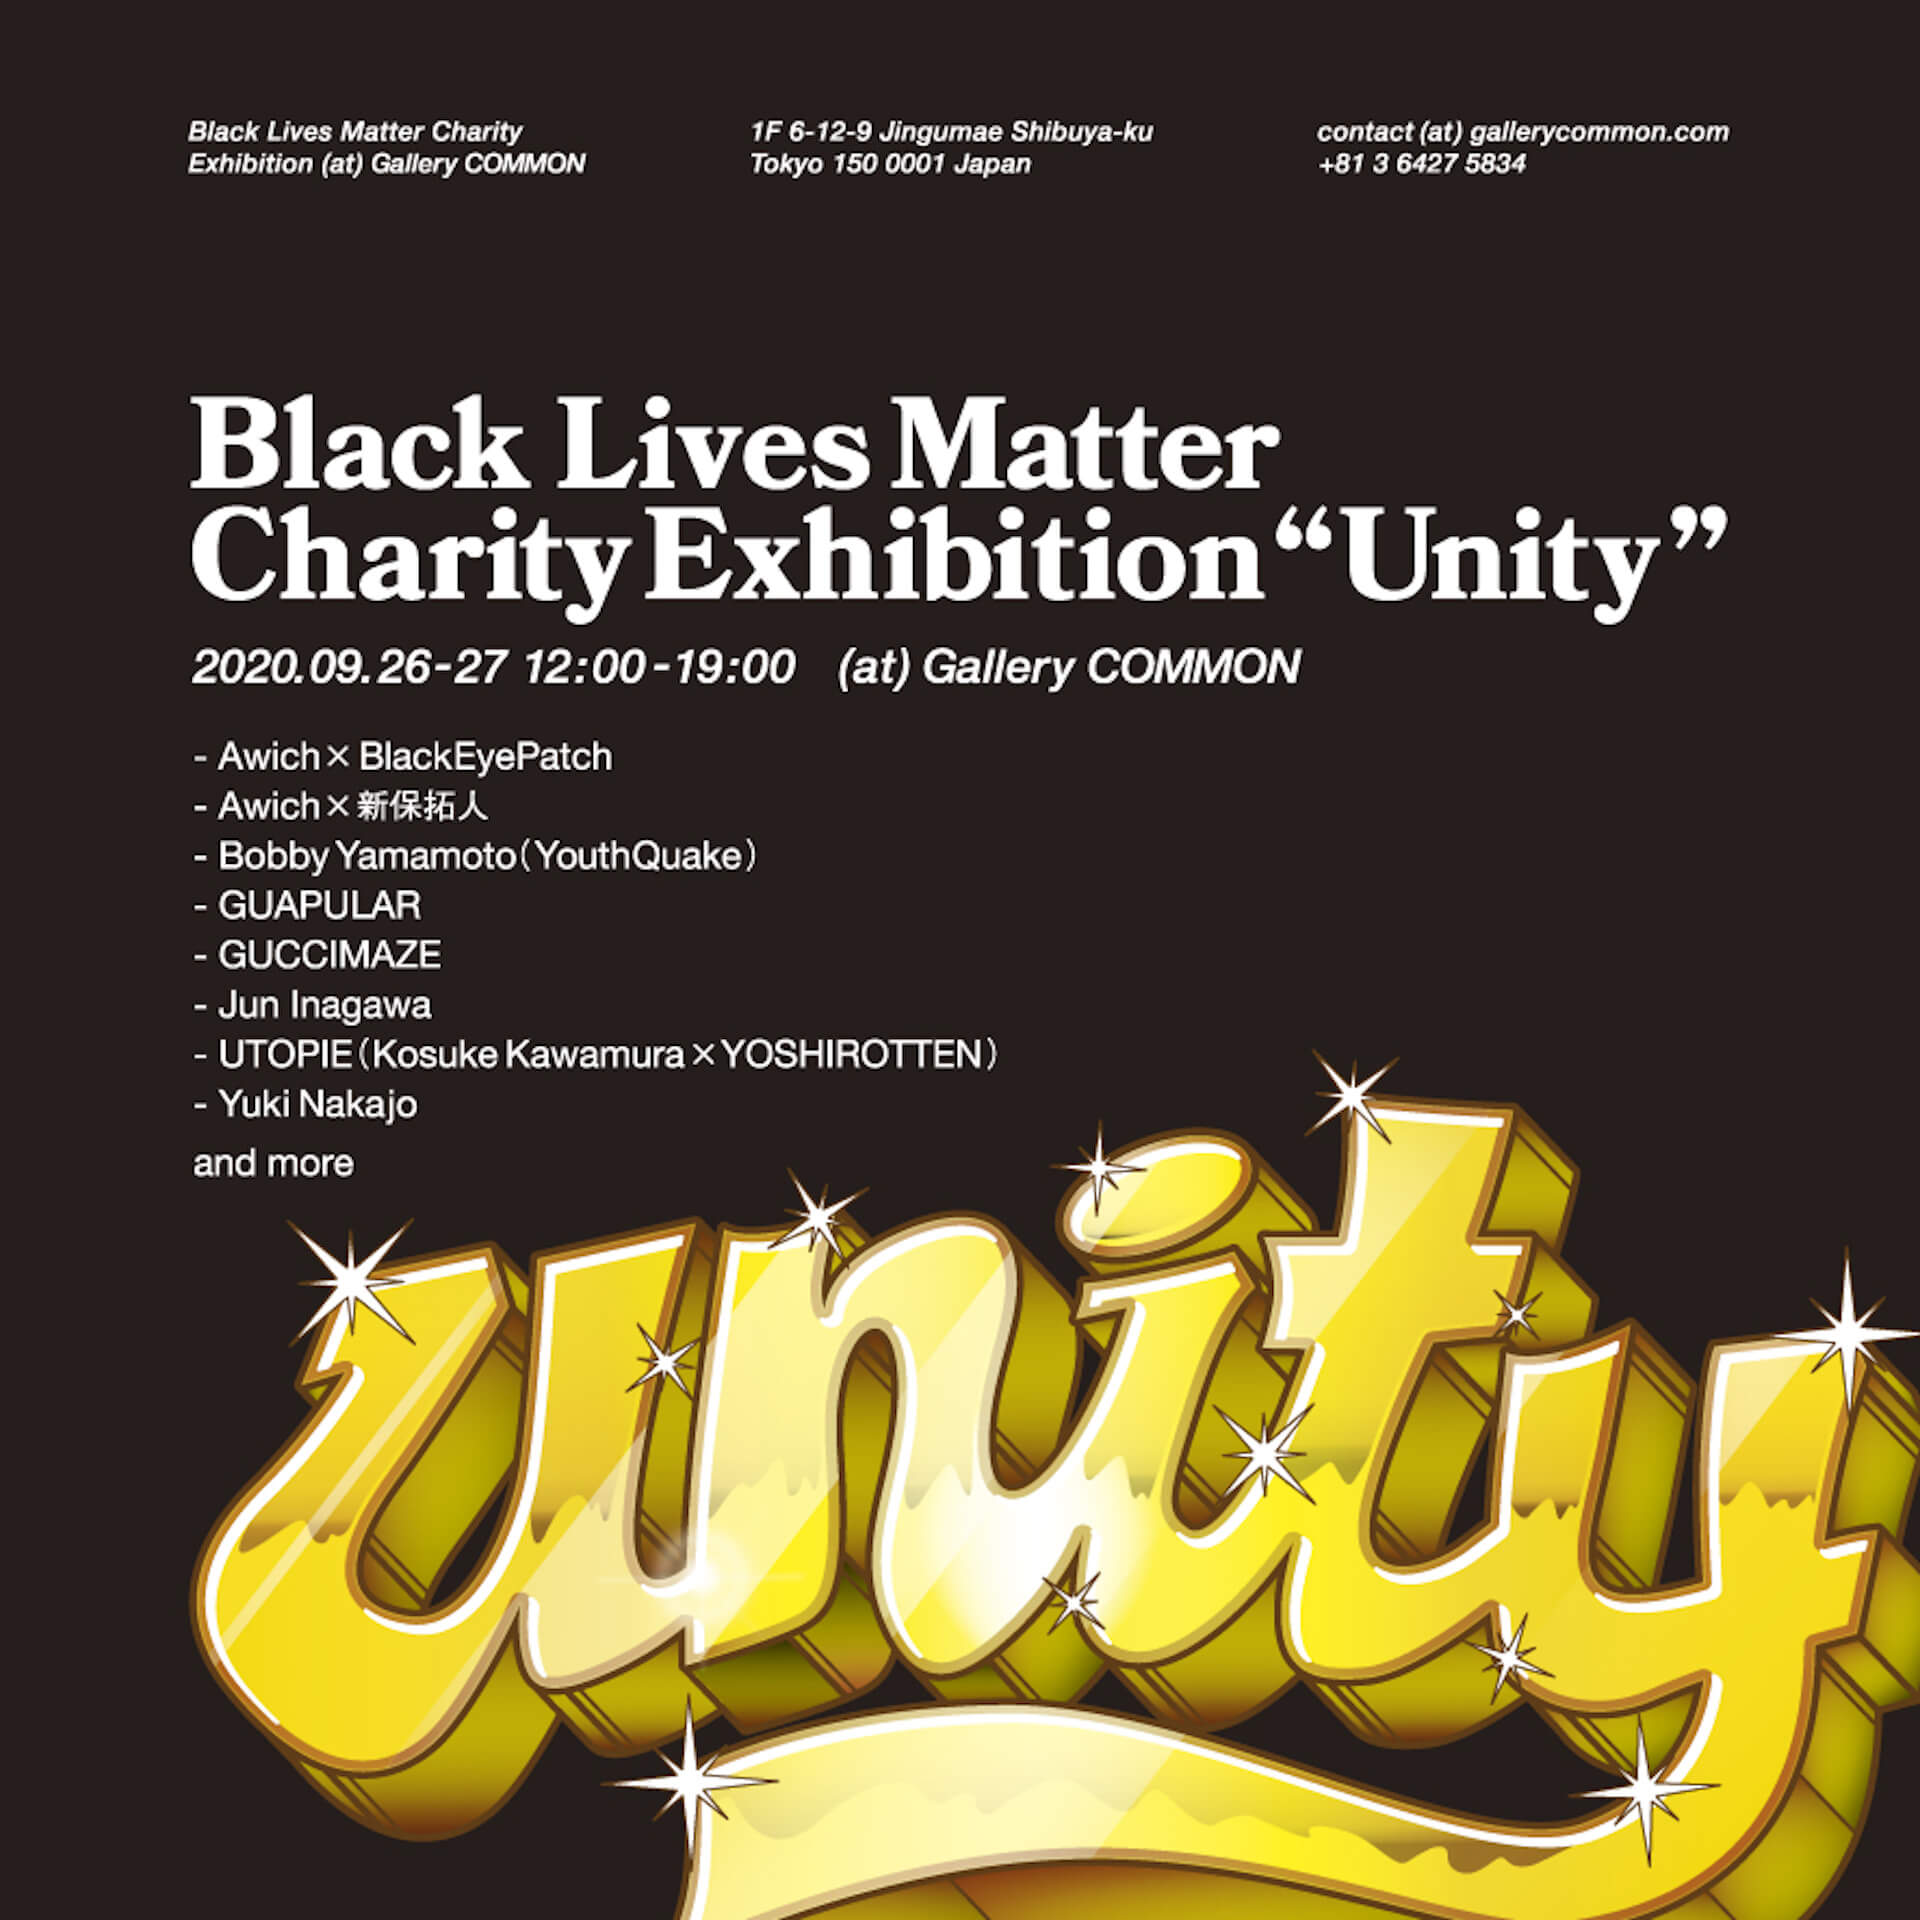 AwichがBLM運動をサポートするアートエキシビジョン<Black Lives Matter Charity Exhibition「Unity」>を開催決定 music200918_awich_1